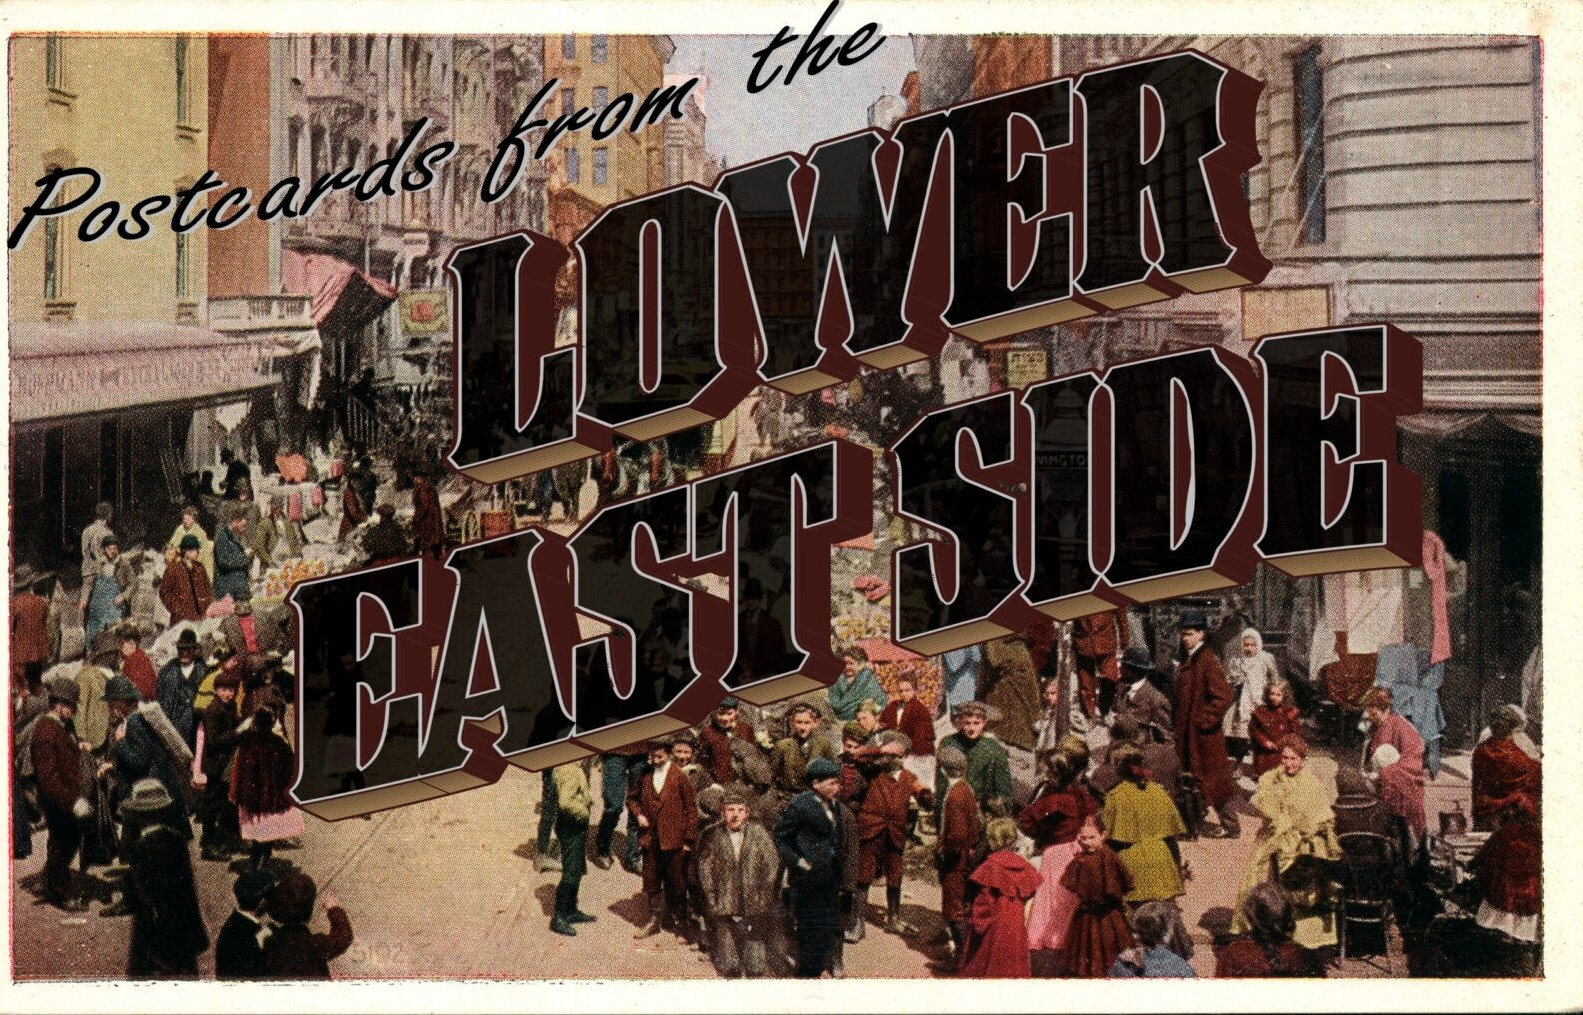 """Art depicting a busy street scene with overlaid text that reads """"Postcards from the Lower East Side"""""""